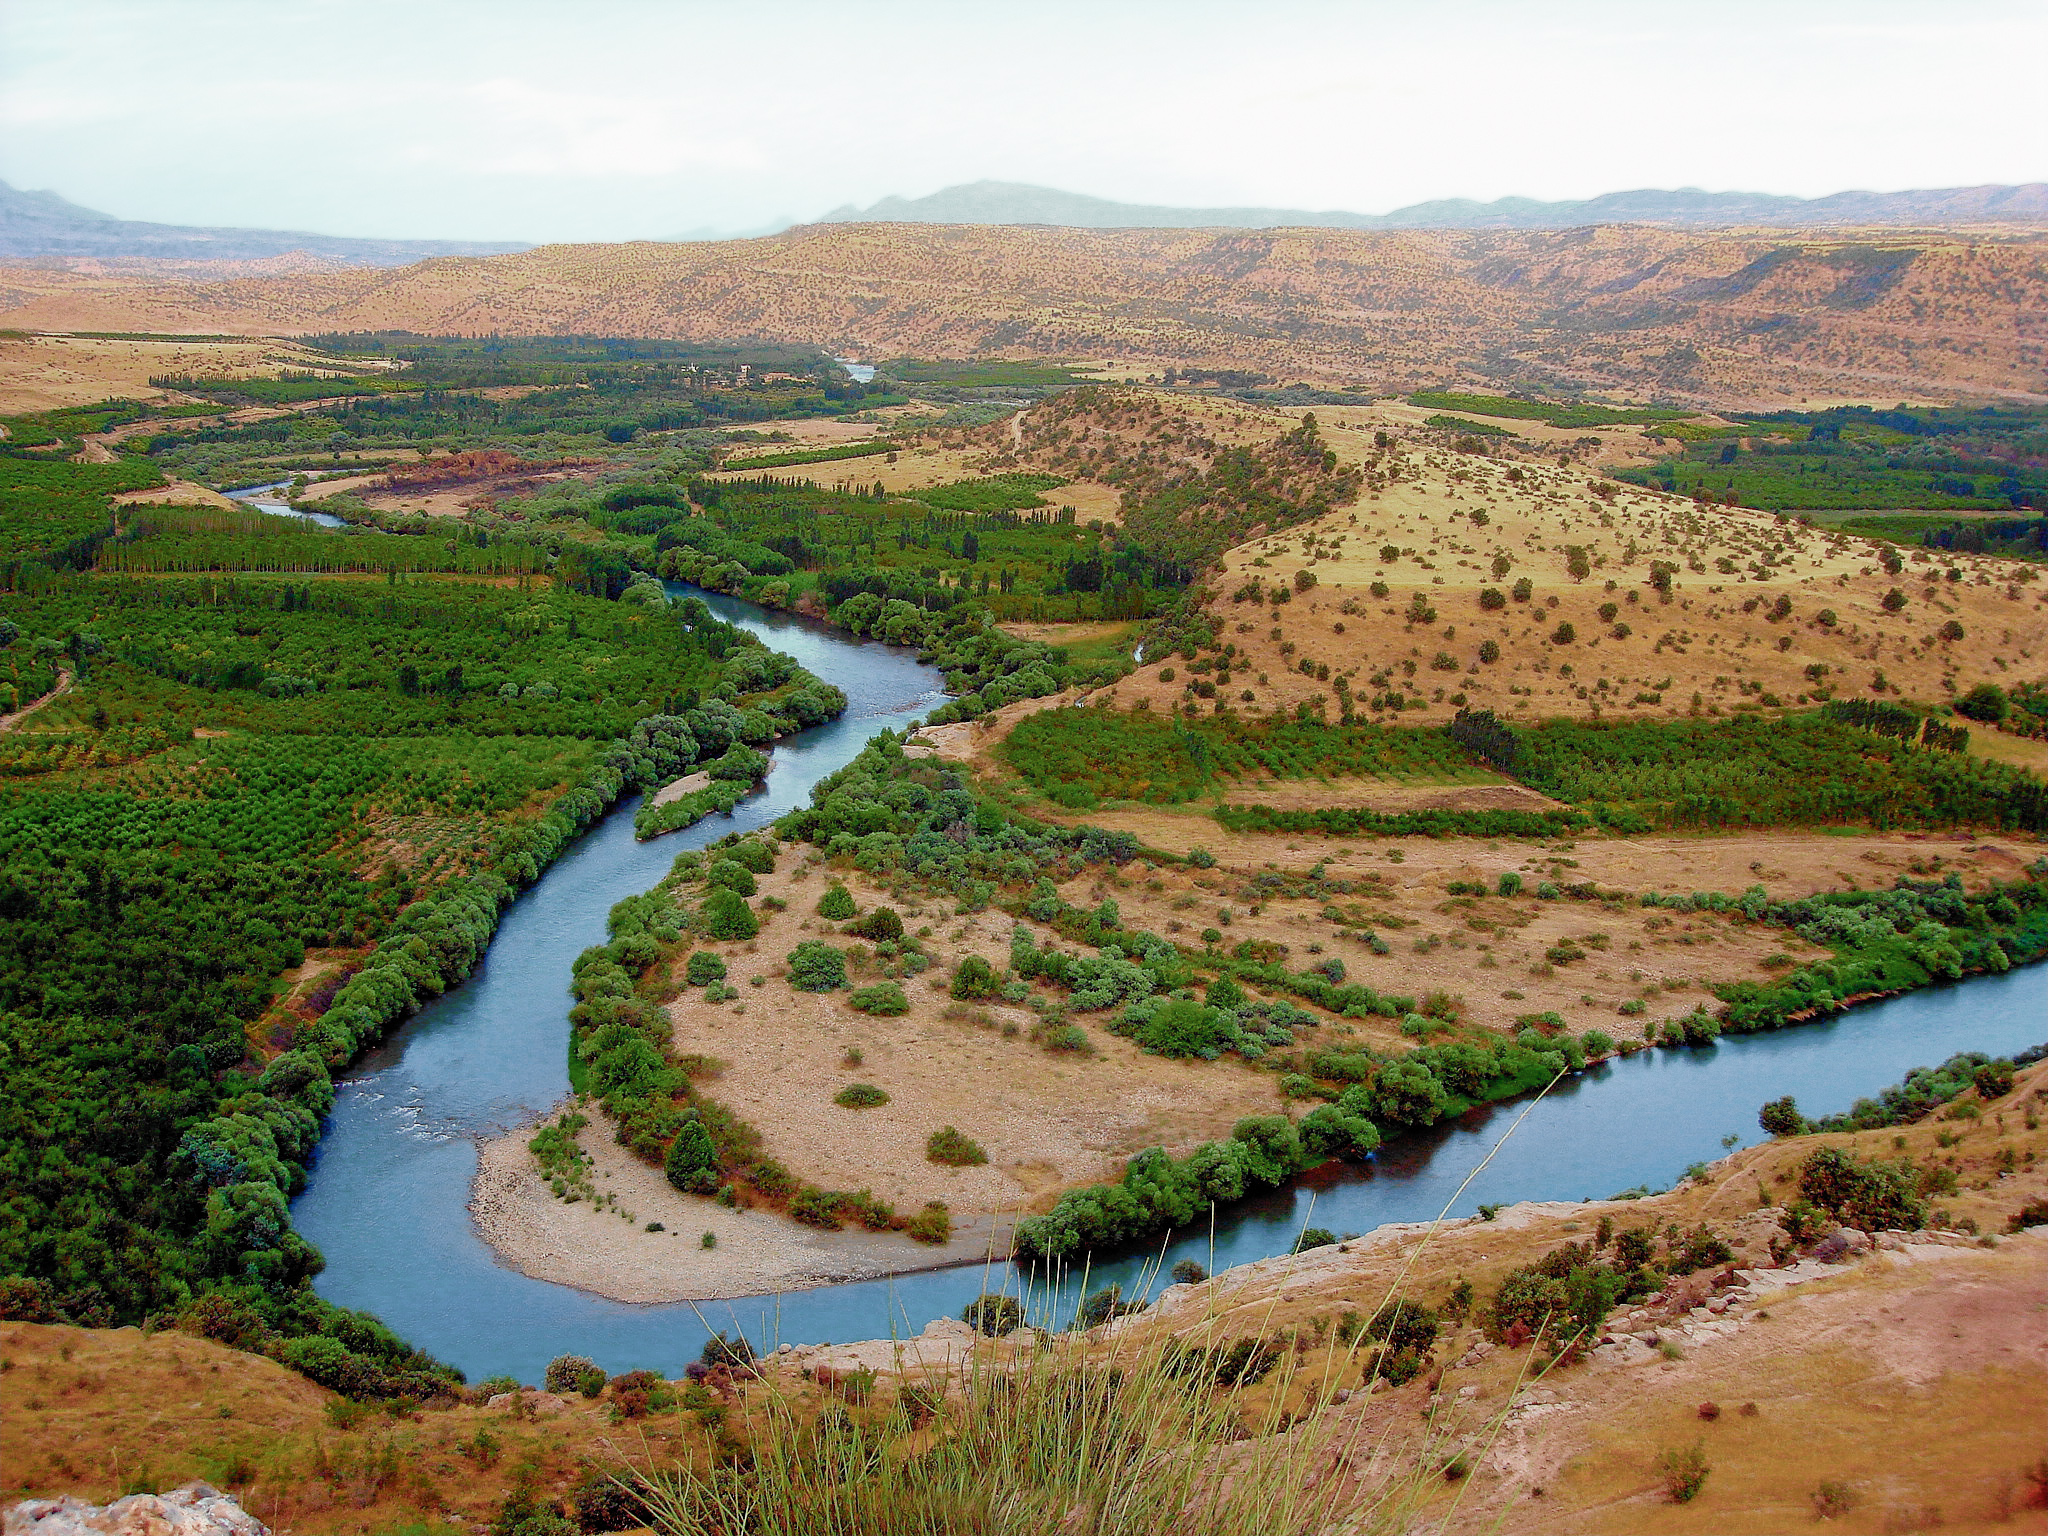 File:Greater Zab River near Erbil Iraqi Kurdistan.jpg  Wikipedia, the